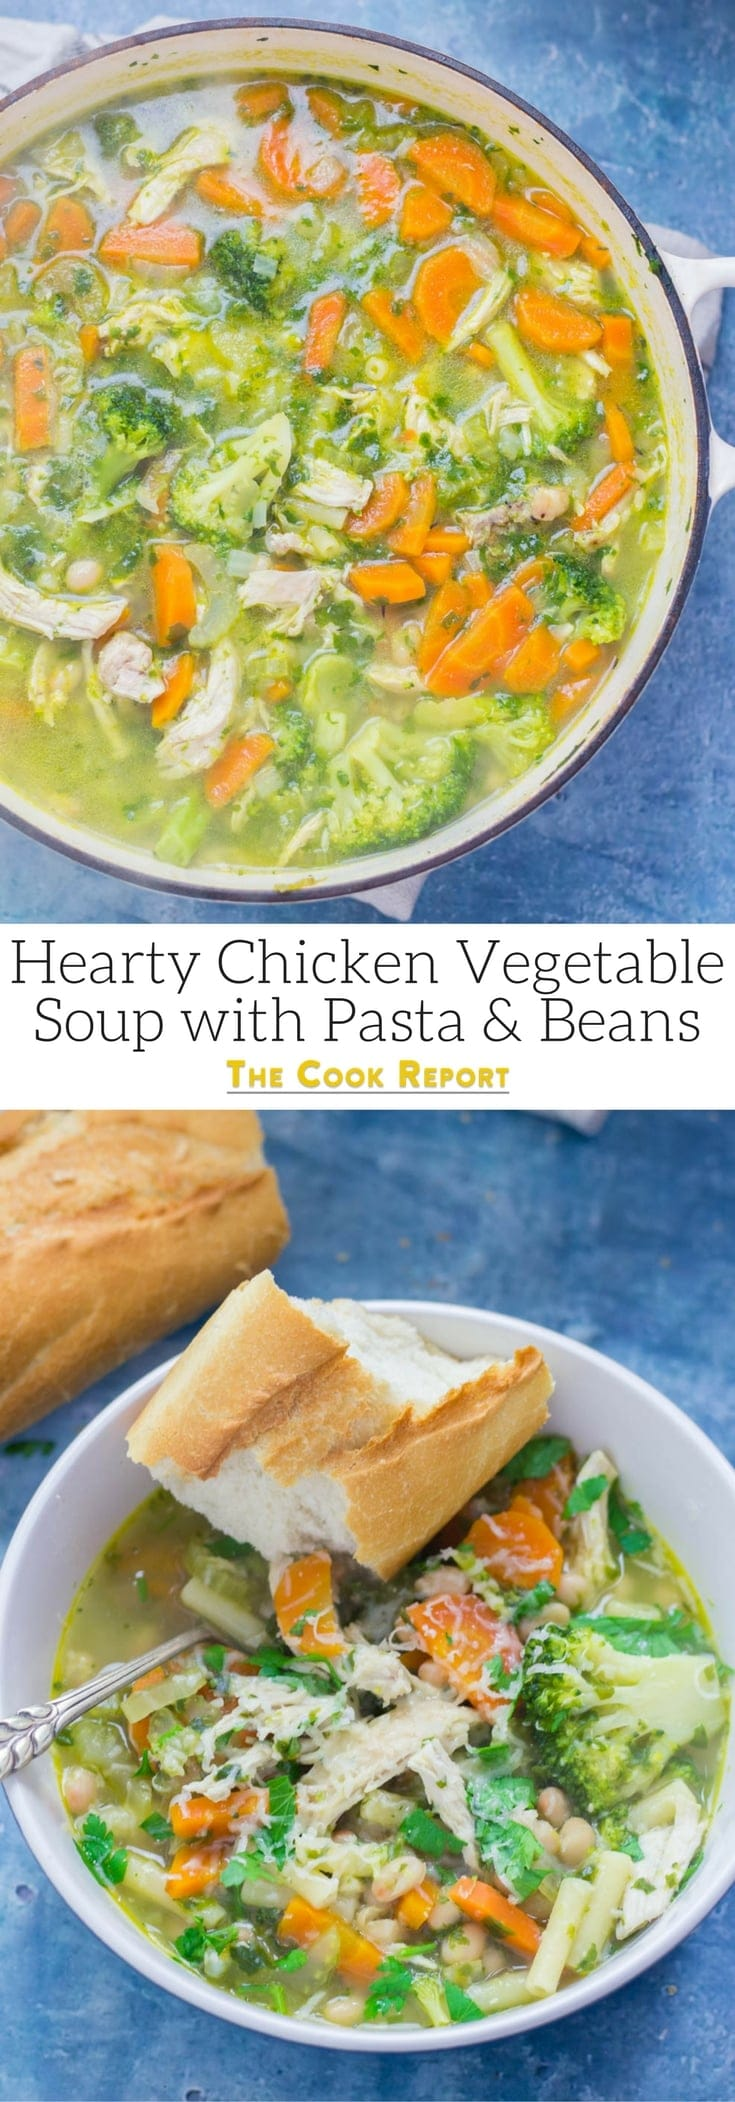 This chicken vegetable soup is a filling and tasty dinner perfect for cold evenings. Serve with some crusty bread and a sprinkling of parmesan. #soup #chicken #recipe #fallrecipes